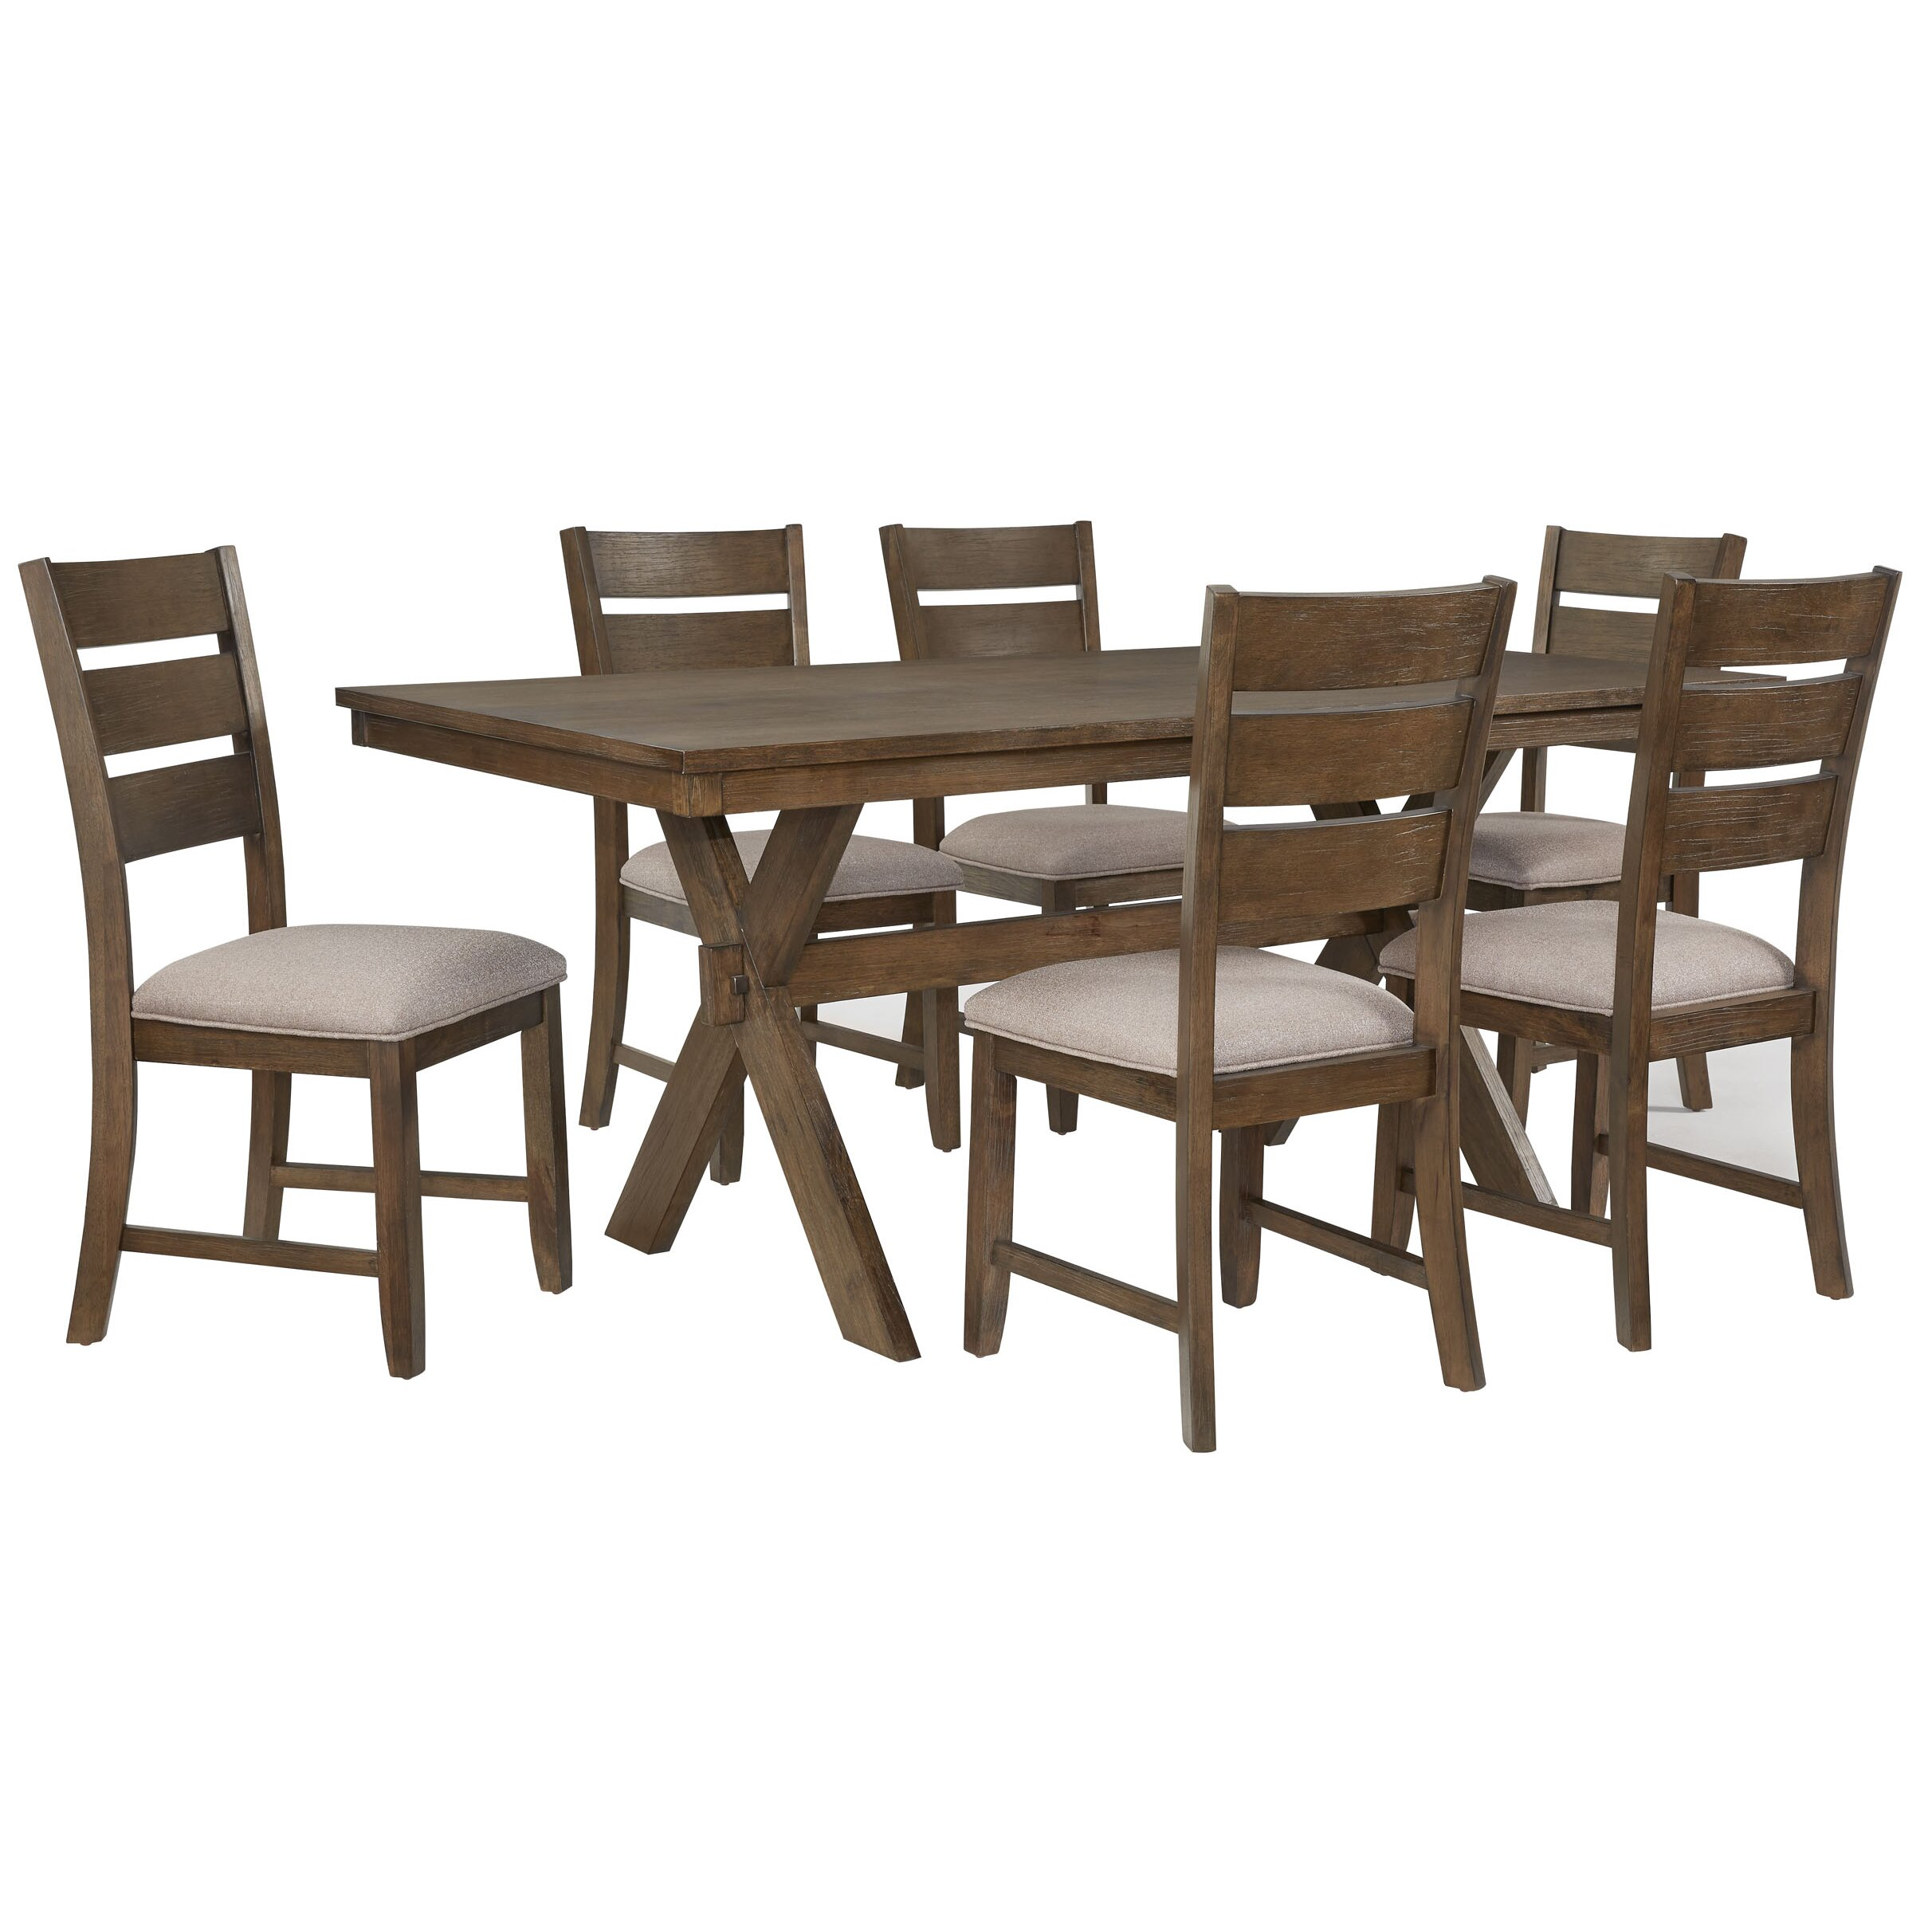 Standard furniture 7 piece dining set reviews wayfair for Furniture 7 reviews